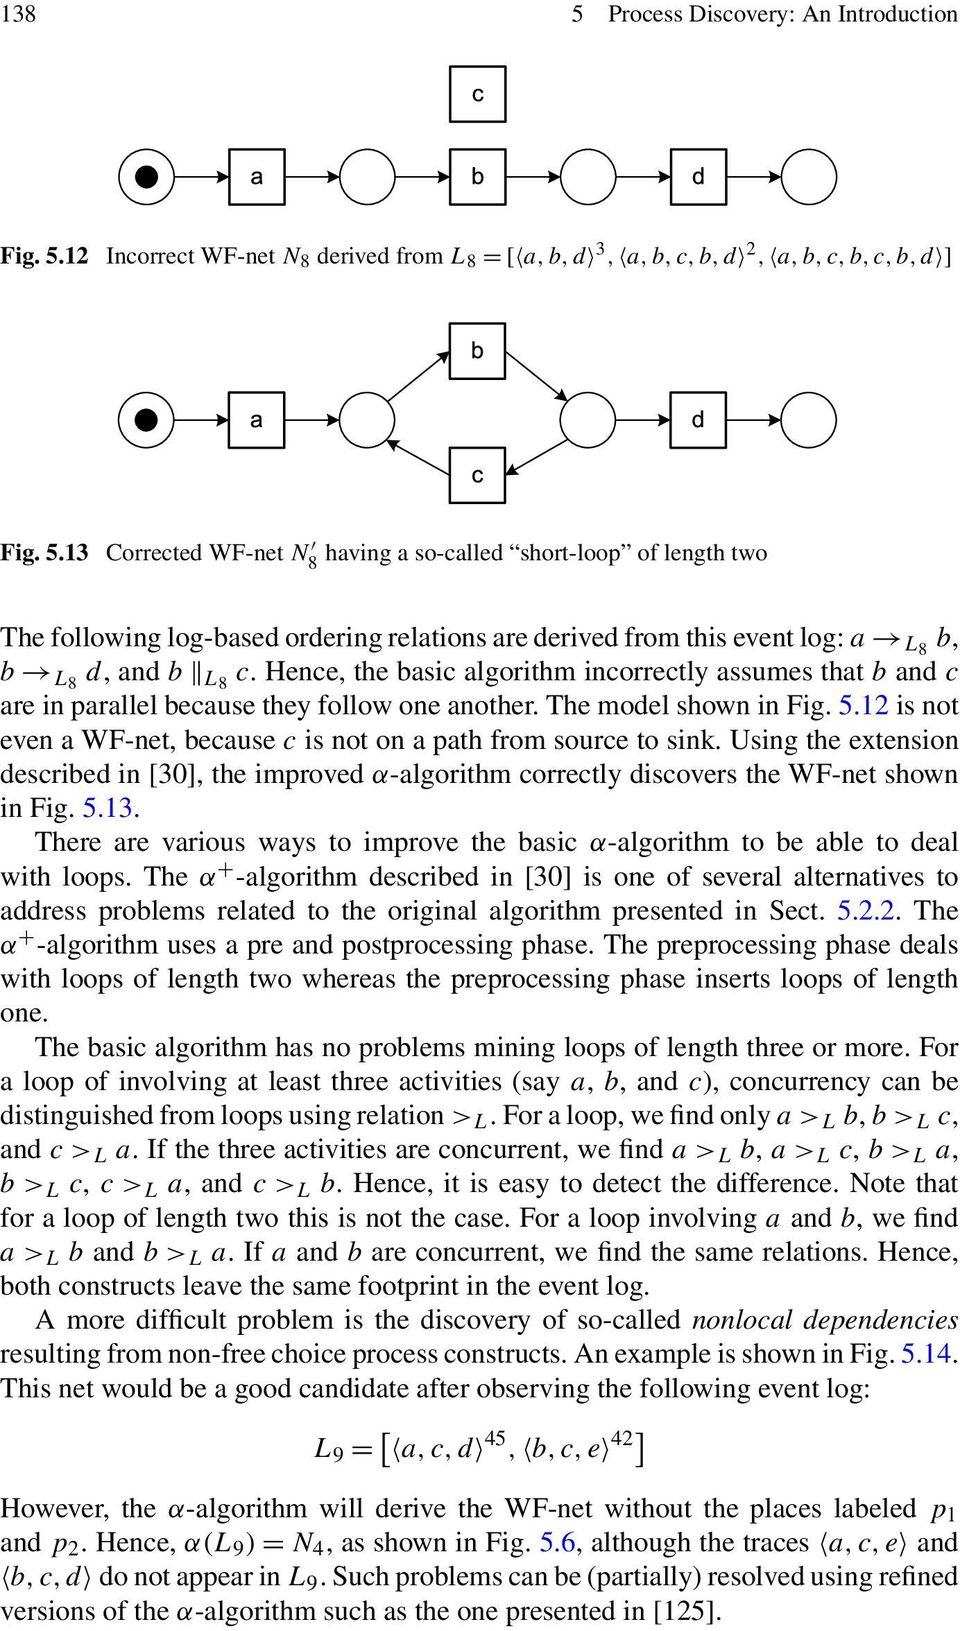 12 is not even a WF-net, because c is not on a path from source to sink. Using the extension described in [30], the improved α-algorithm correctly discovers the WF-net shown in Fig. 5.13.